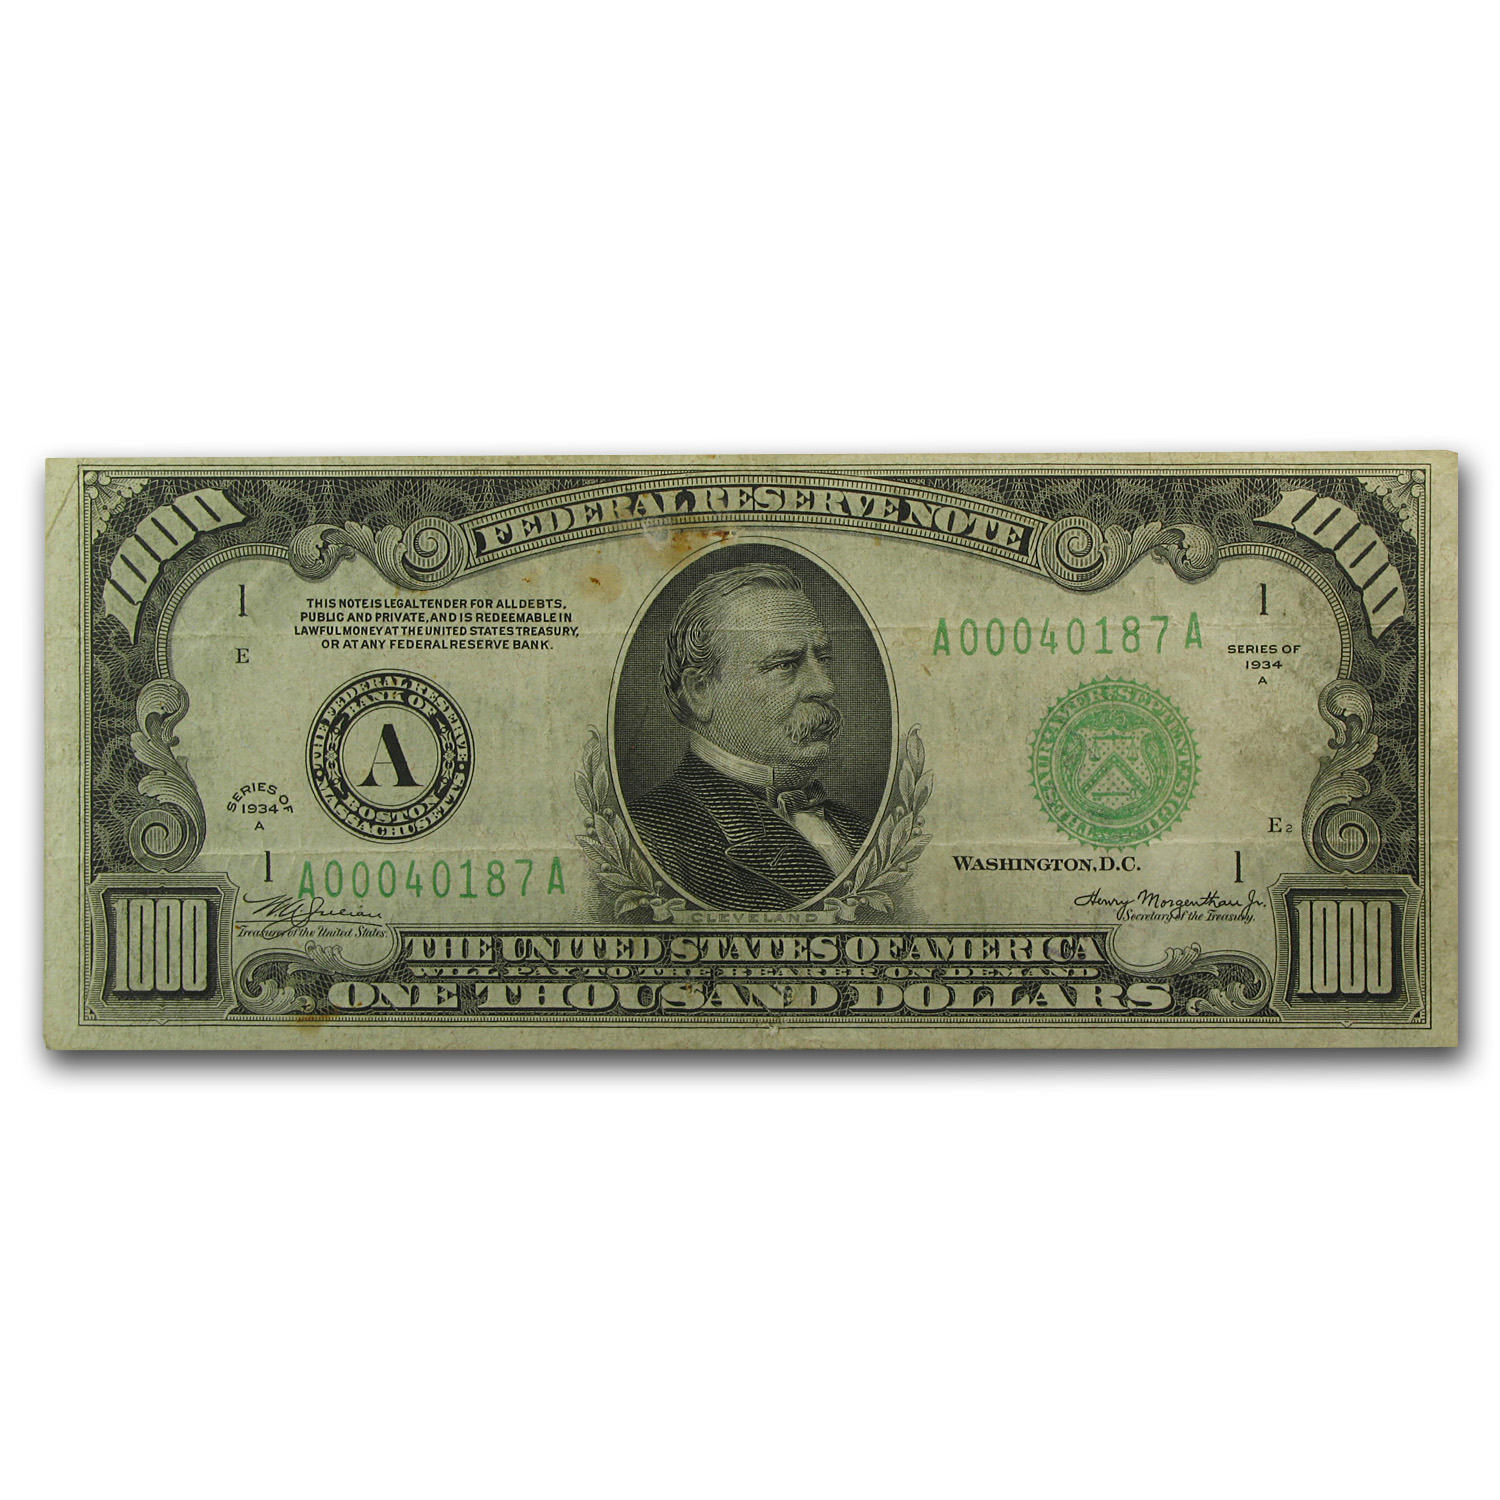 1934-A (A-Boston) $1,000 FRN VF